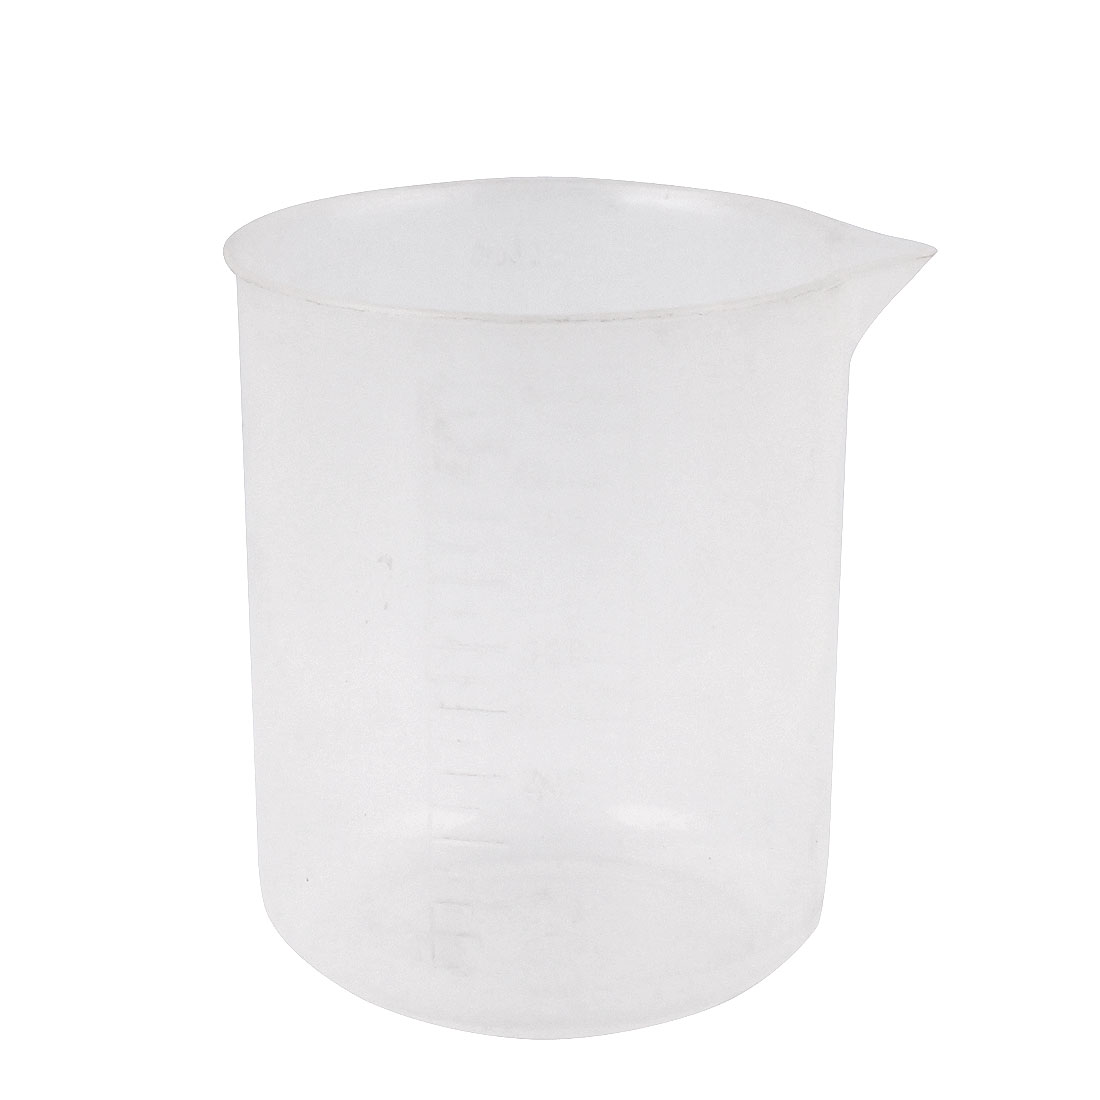 Lab Laboratory Chemistry Graduated Clear Plastic Water Liquid Measuring Container Testing Beaker 500mL